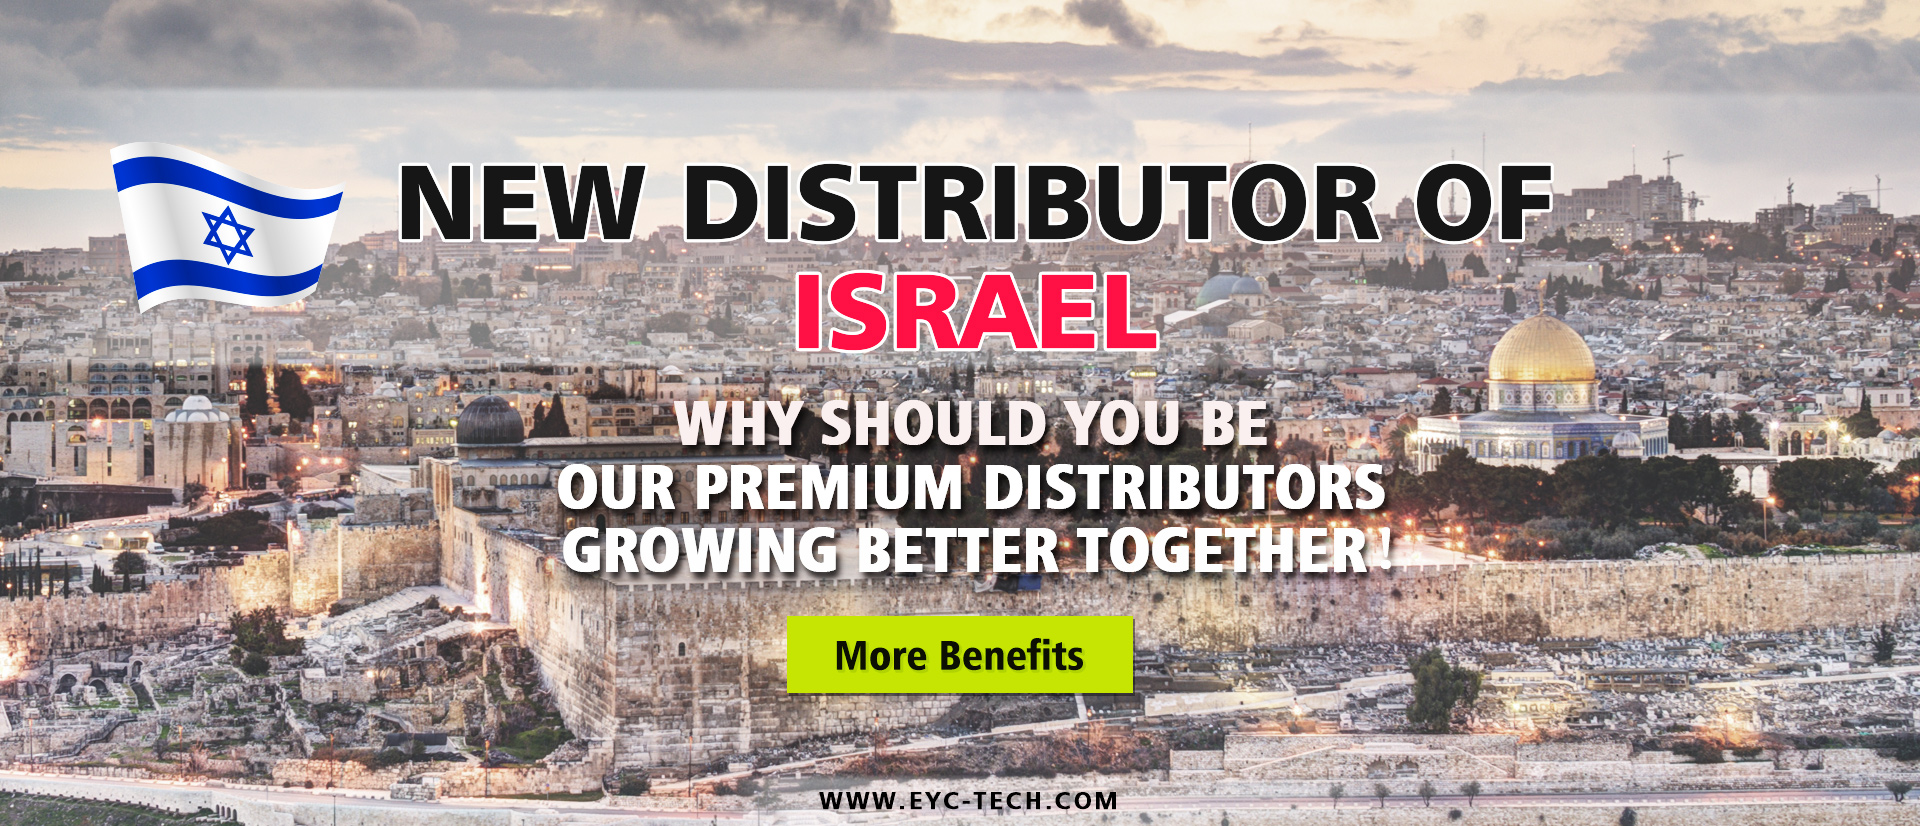 eYc New Premium Distributor of Israel 2018